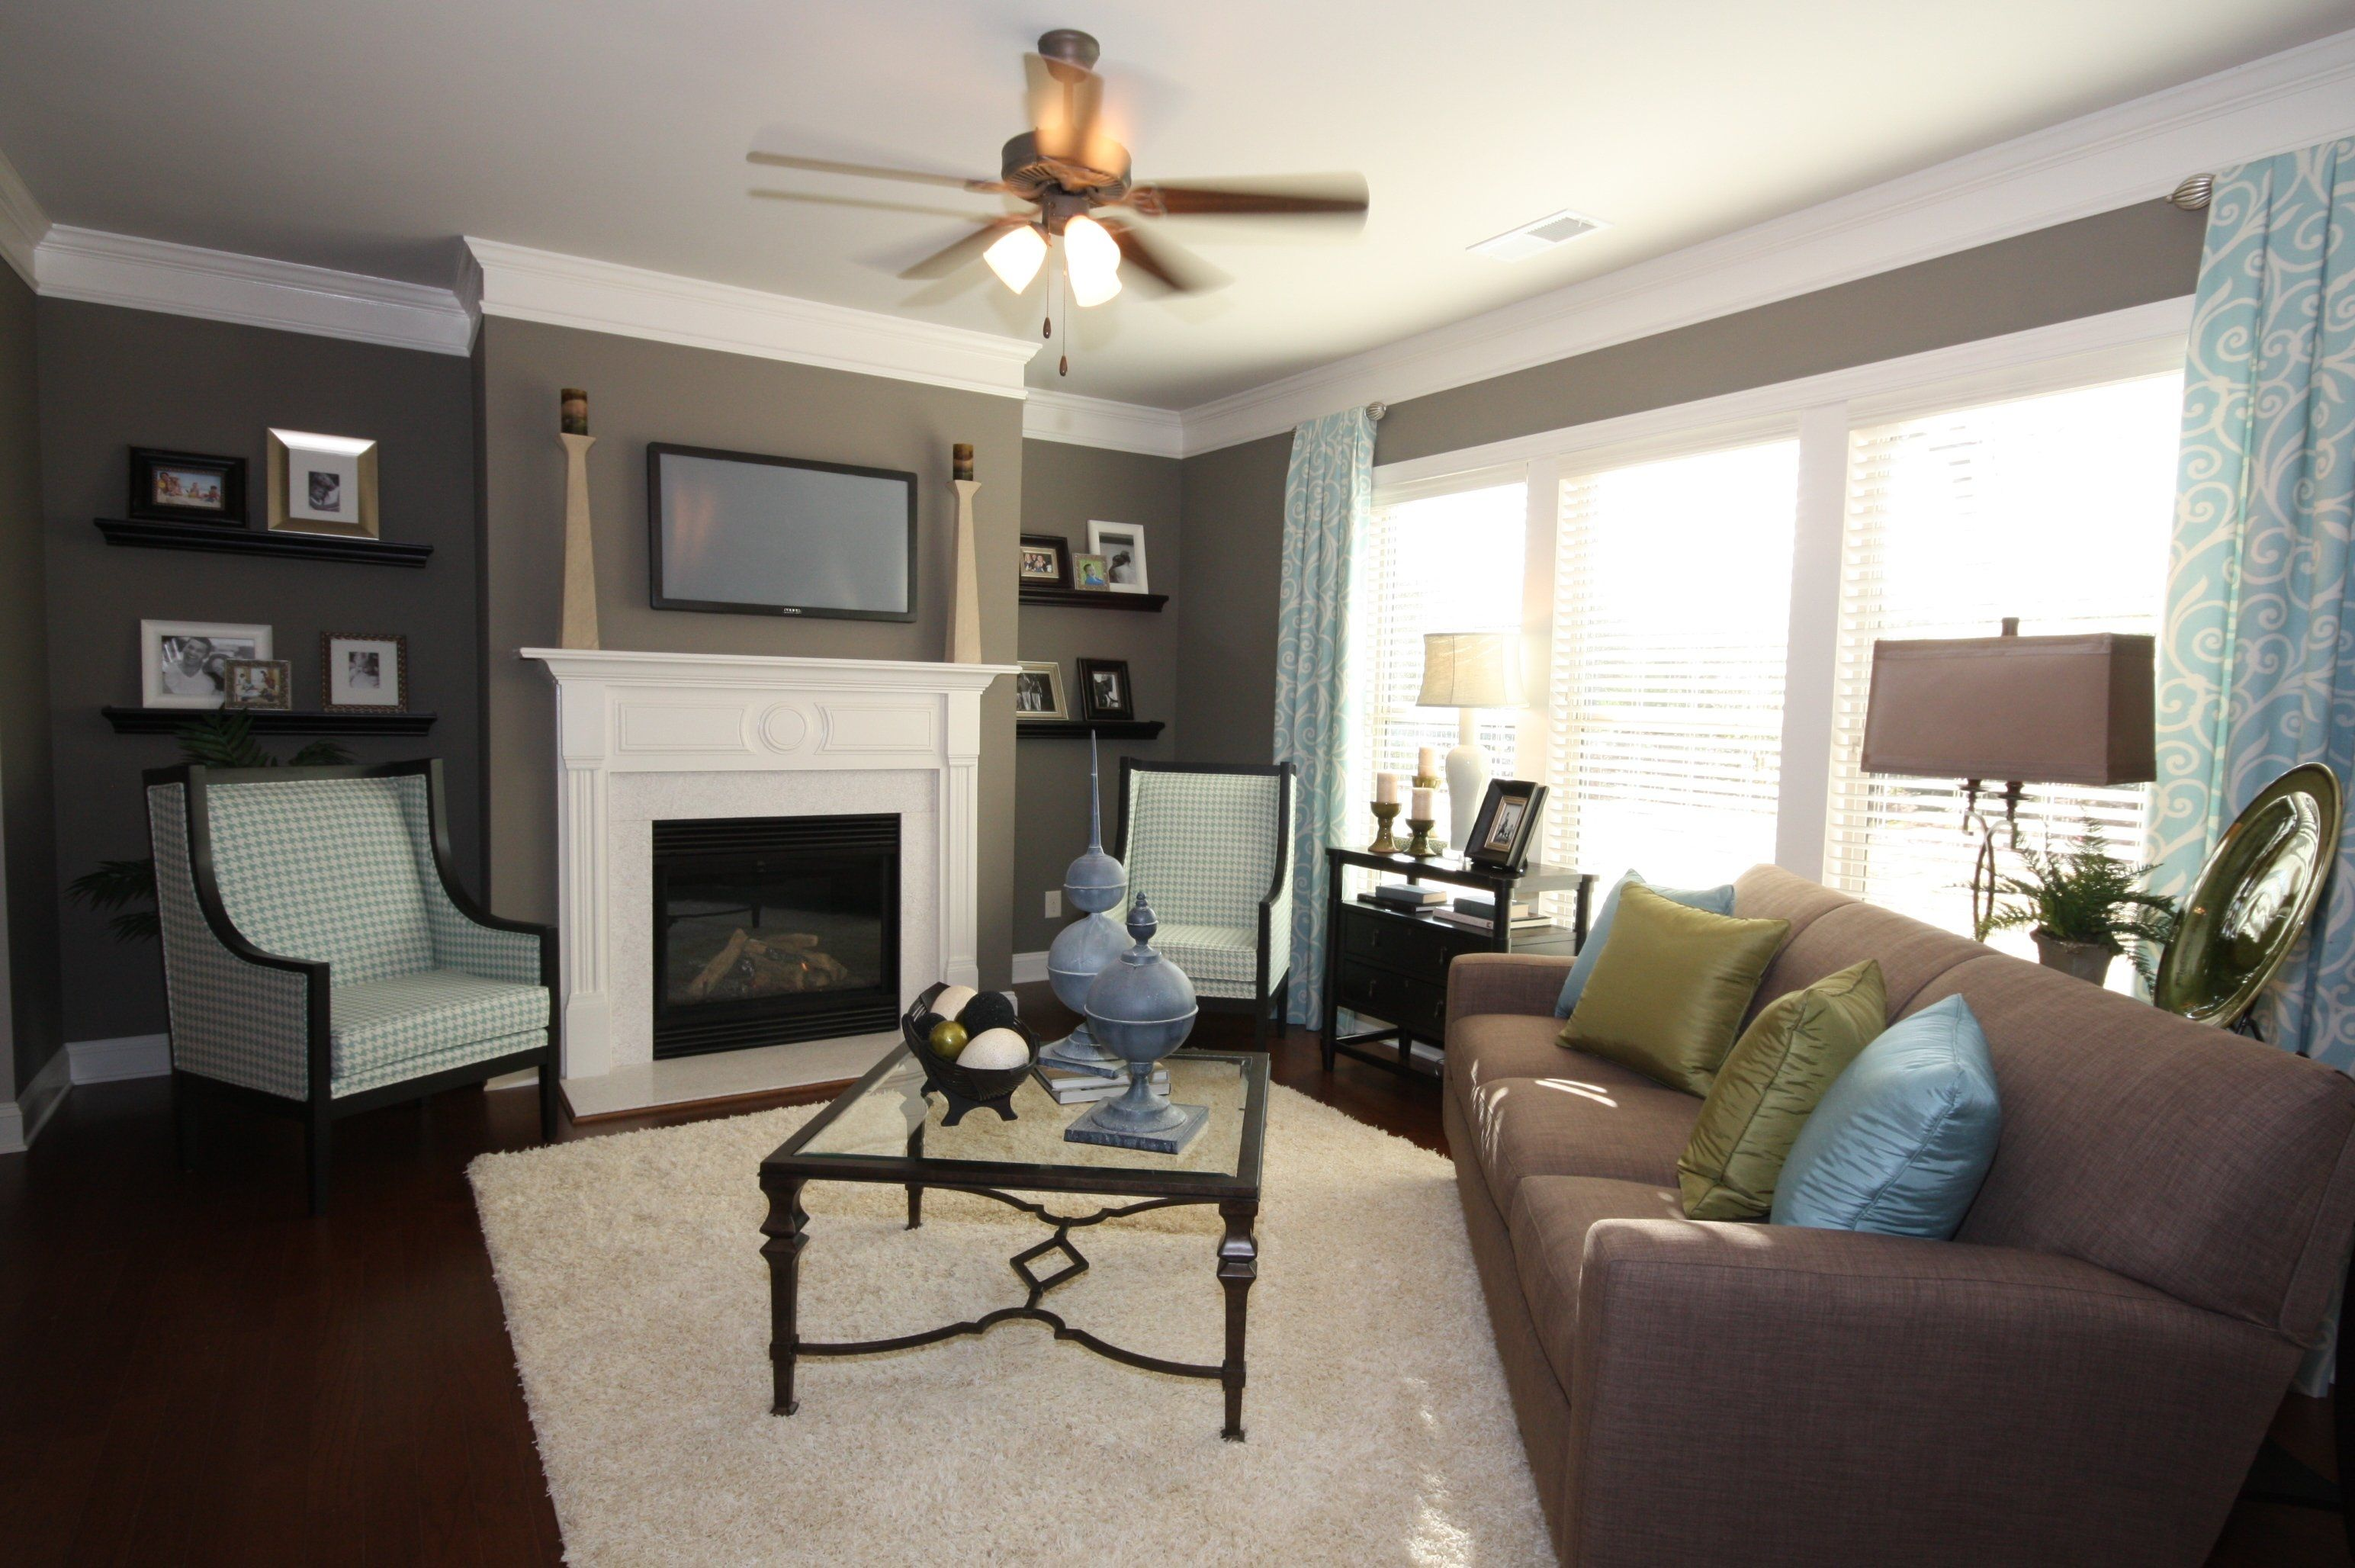 Blue Brown Grey Color Scheme In The Family Room Living Room